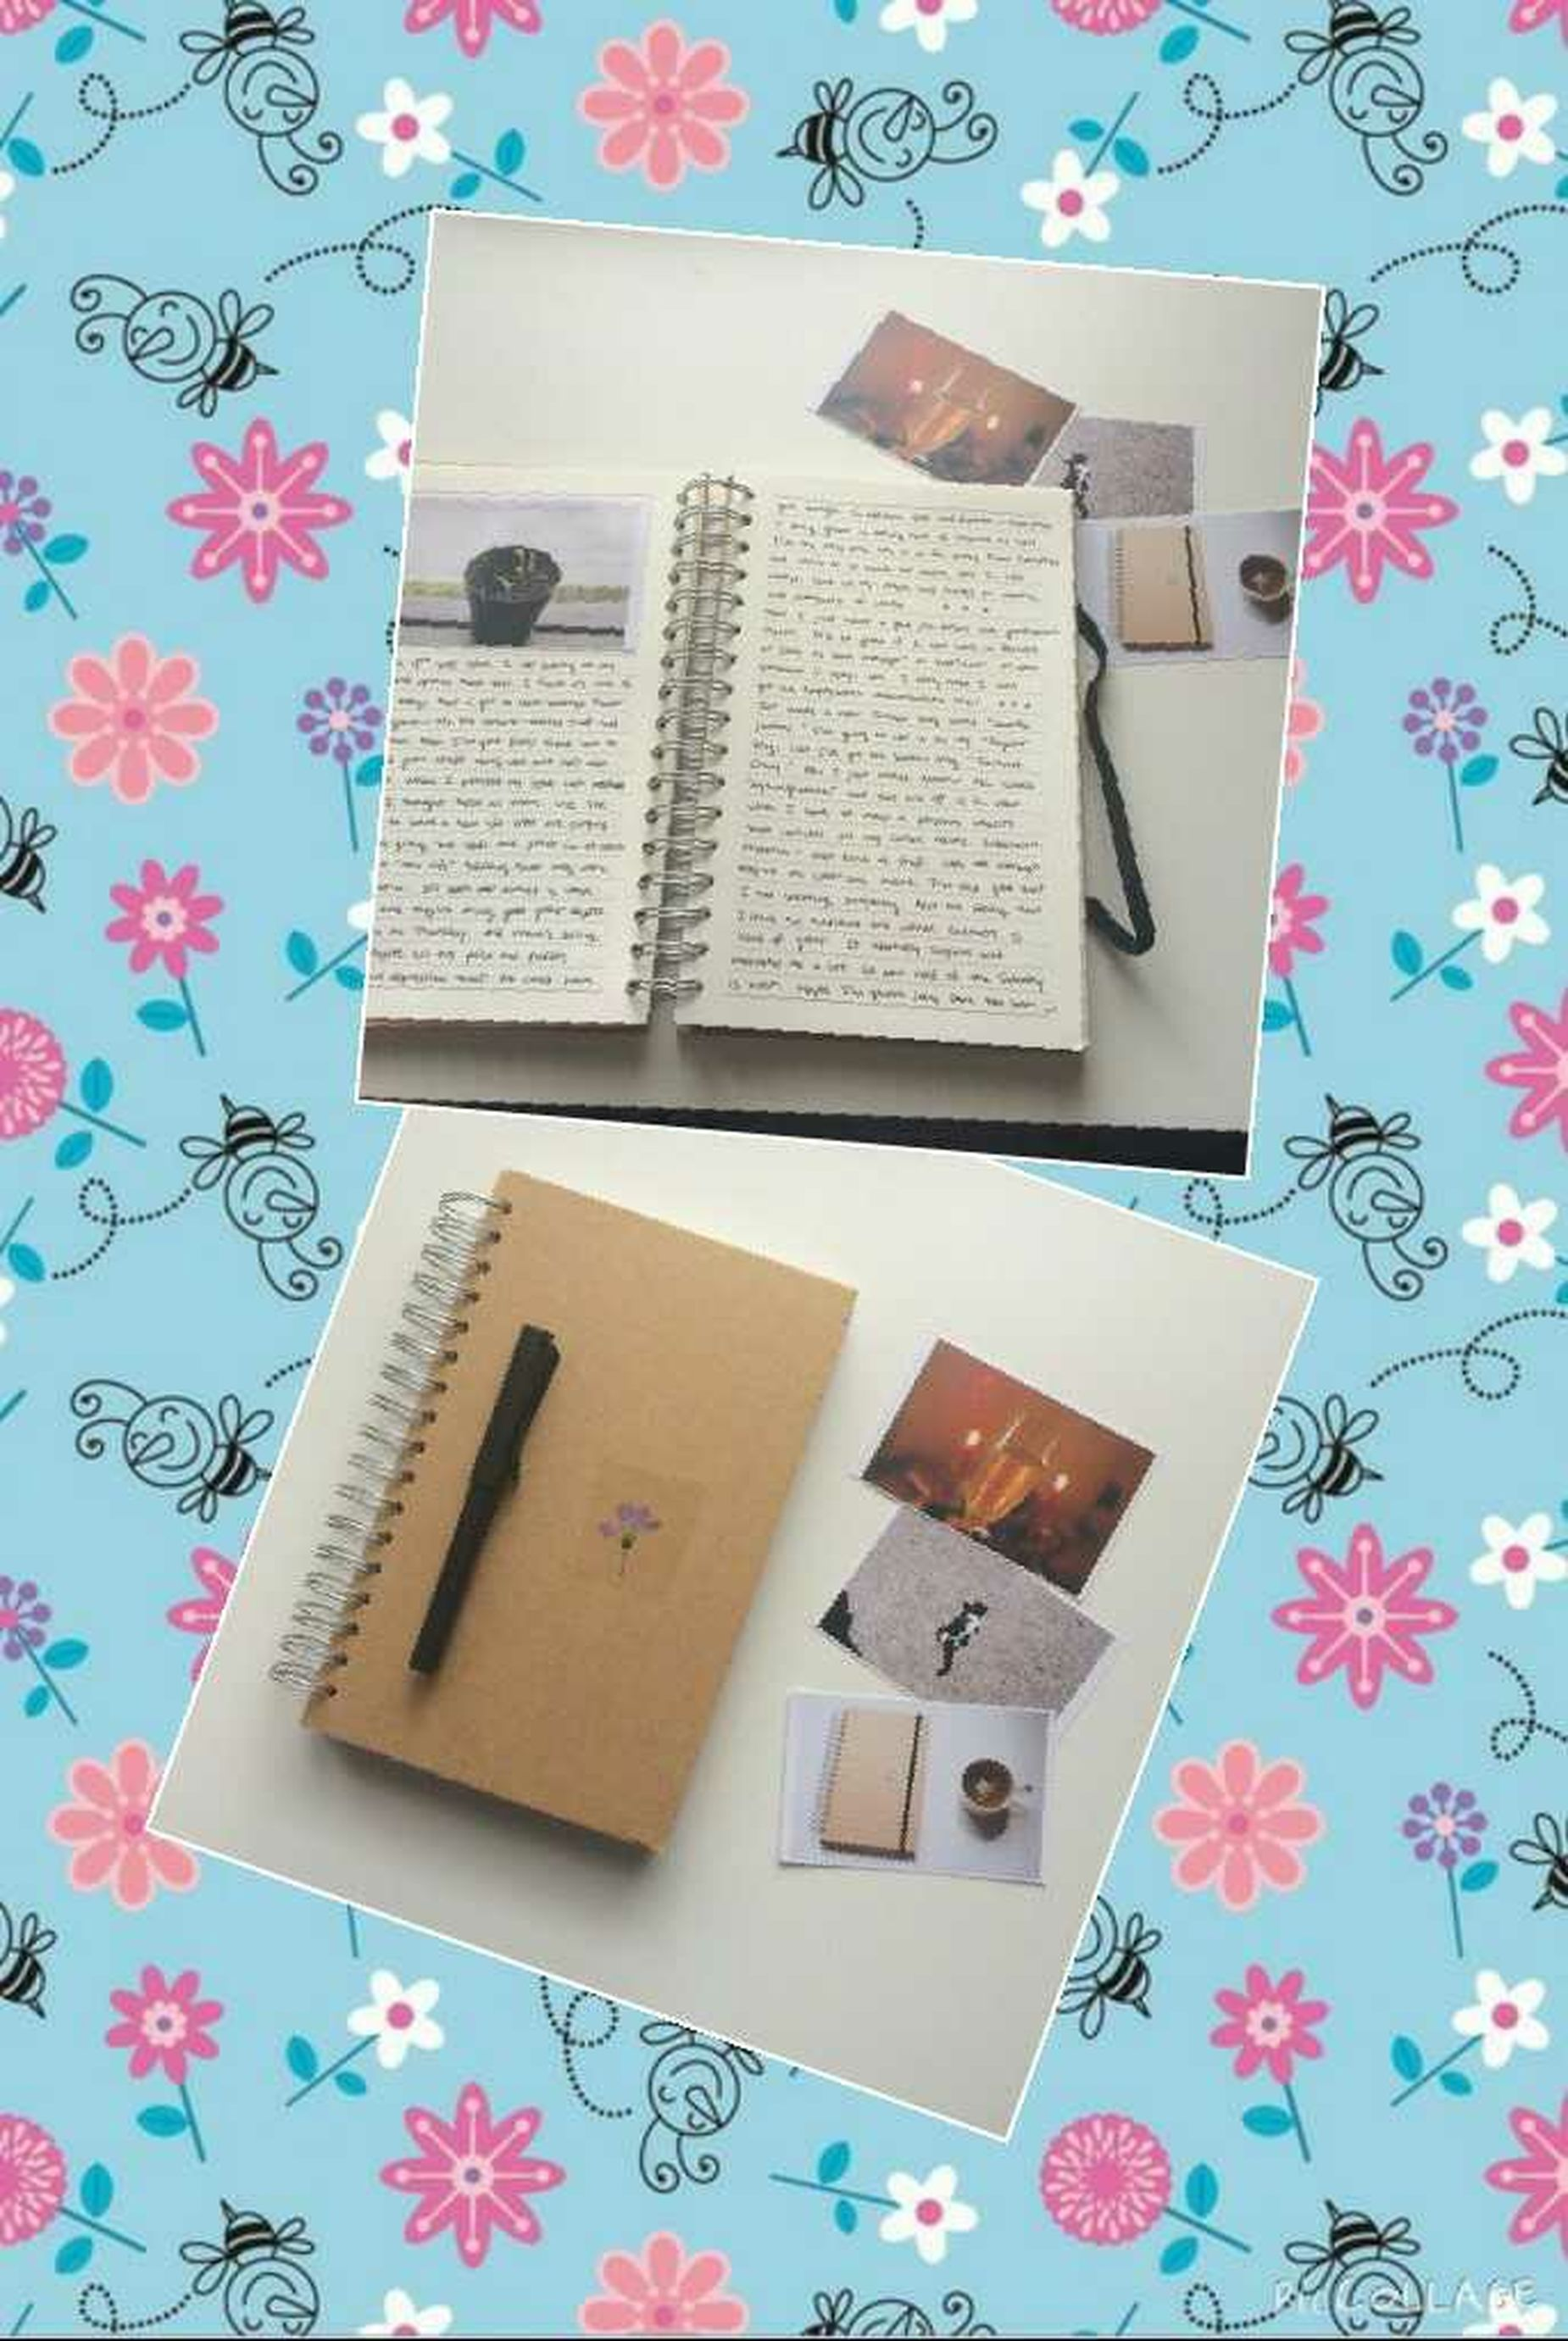 Personaldiary best, cheerful